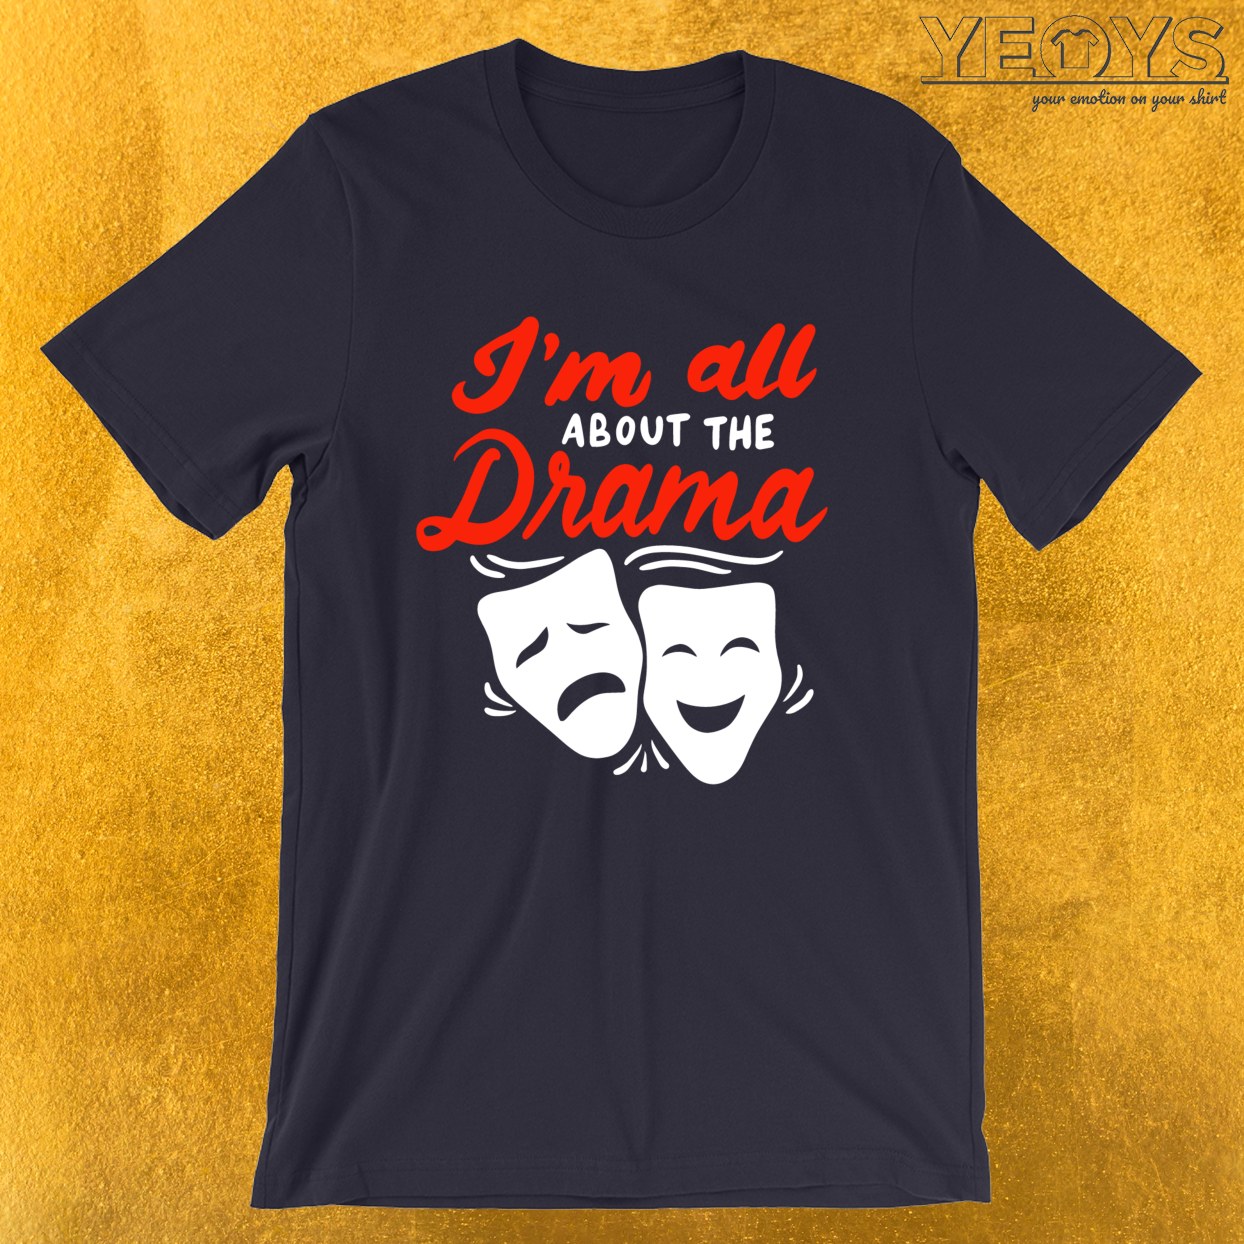 I'm All About The Drama – Theatre Quotes Tee